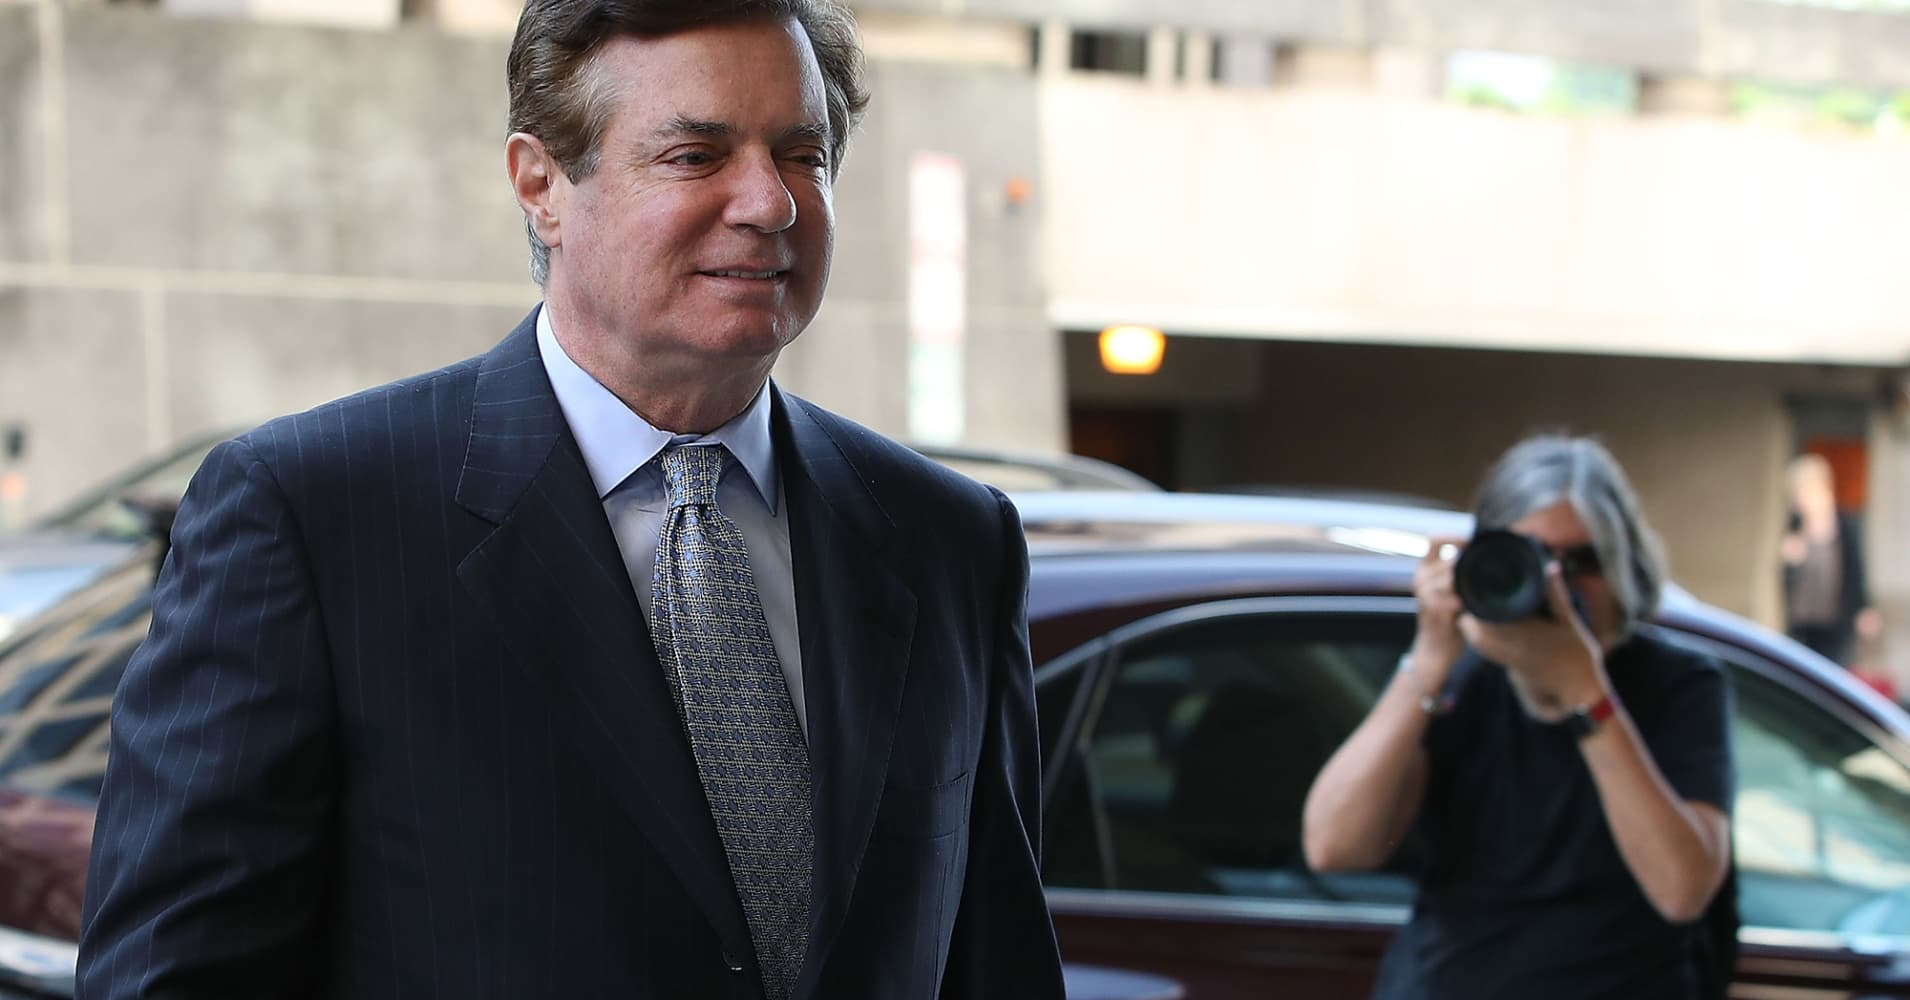 Former Trump campaign boss Manafort reportedly has a plea deal in place with Mueller